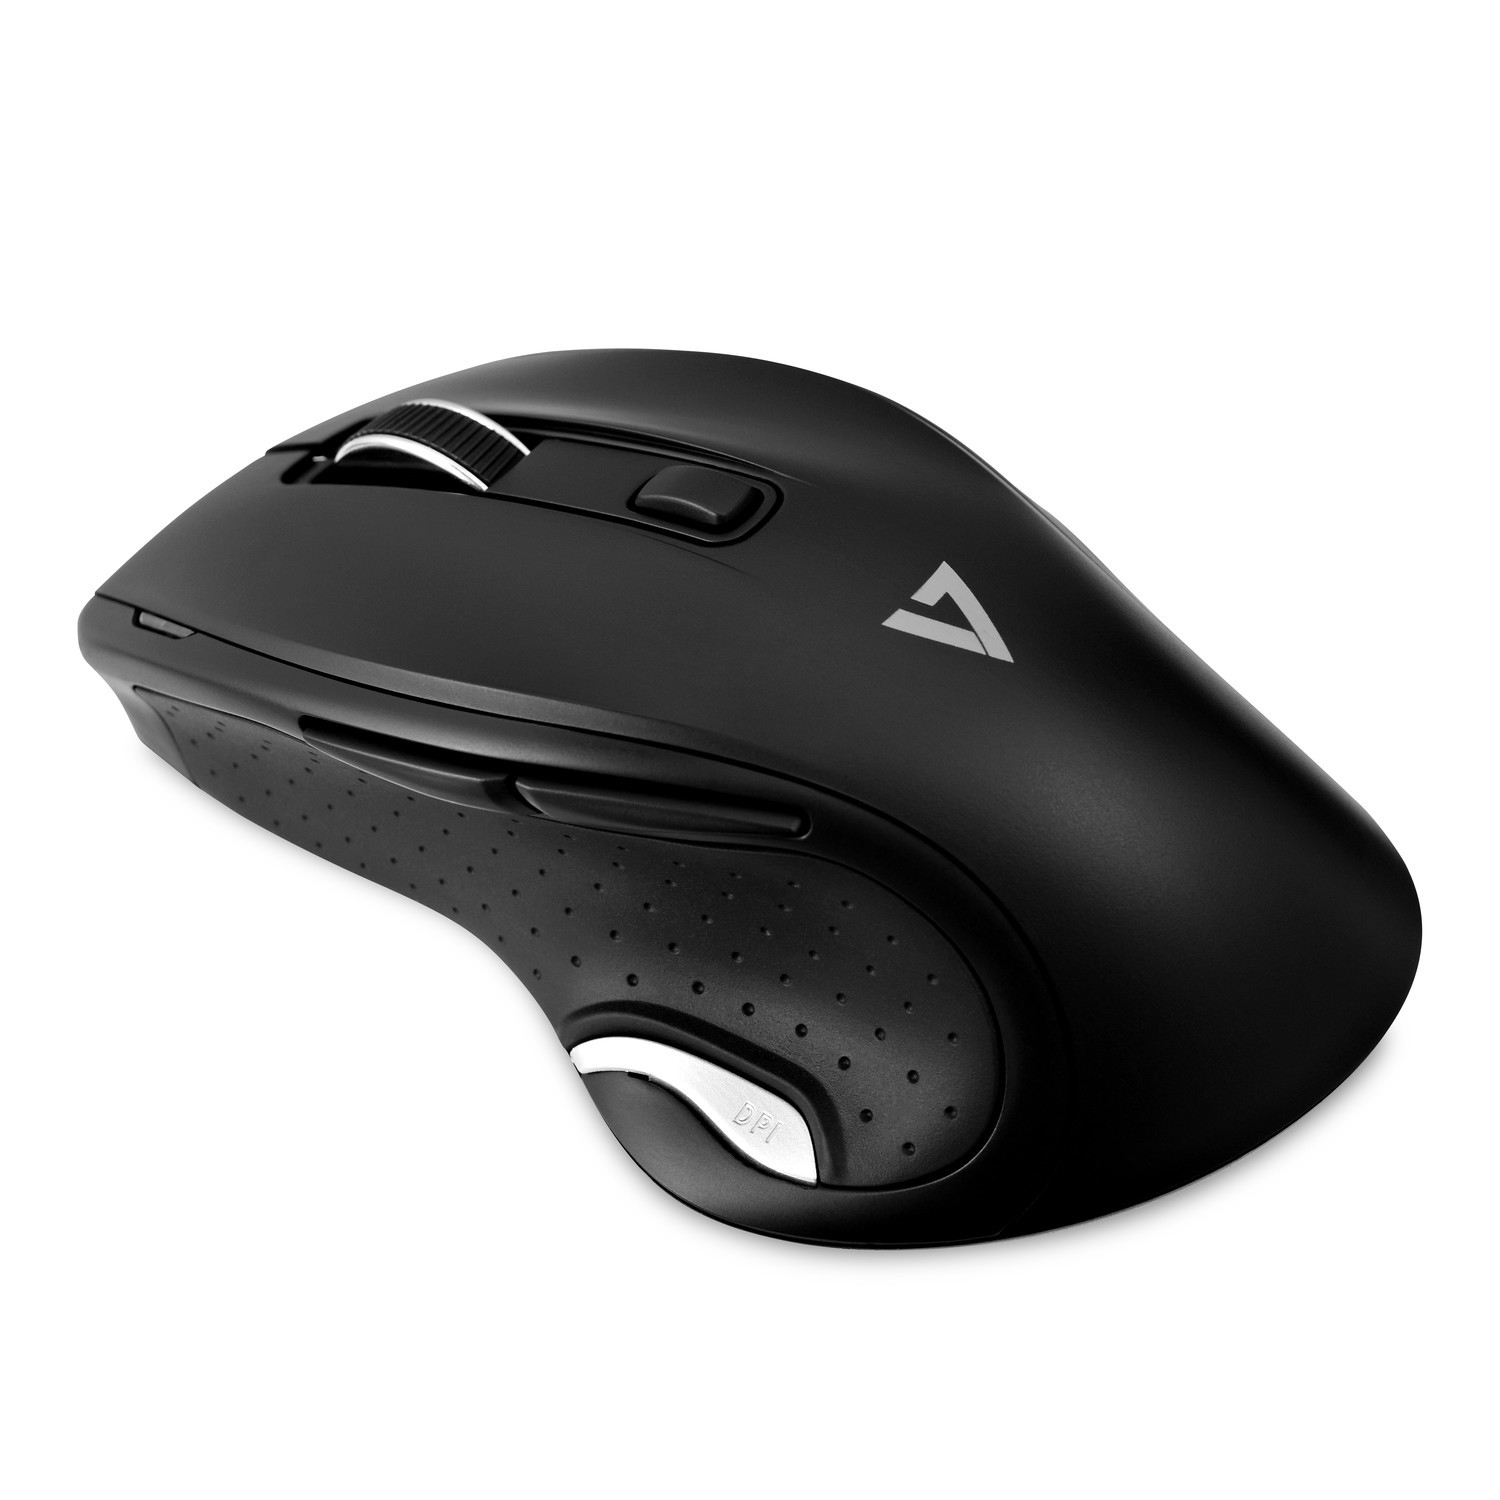 V7 Deluxe Wireless Optical Mouse - Black